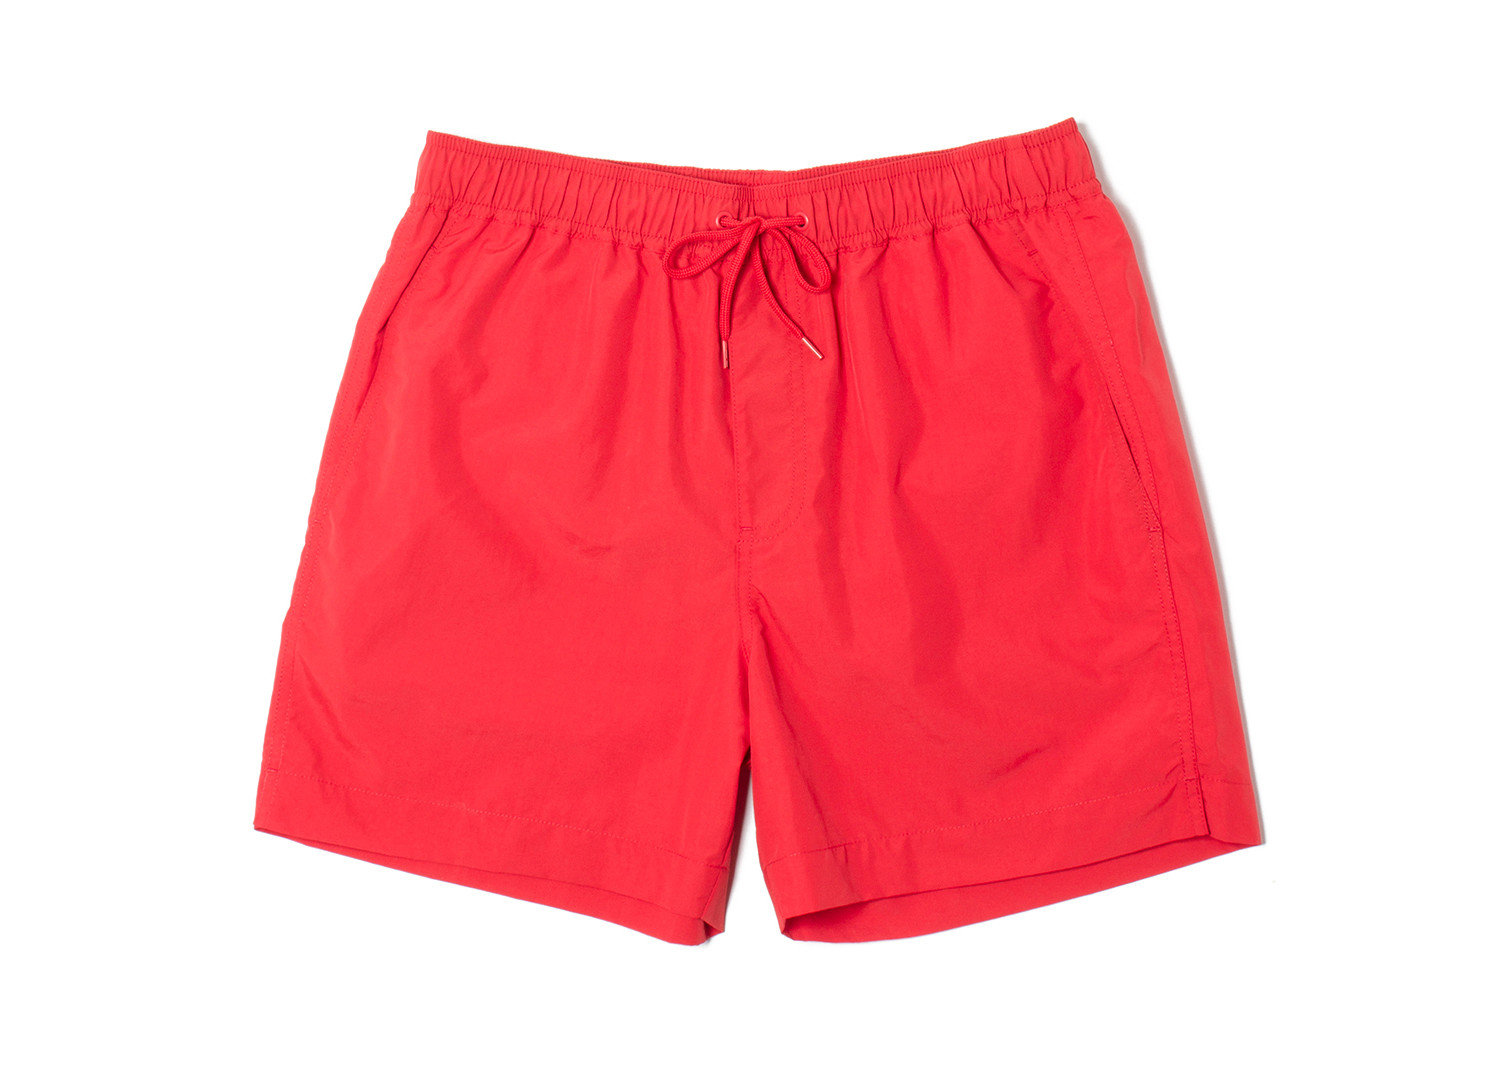 Style + Design clothing red active shorts shorts trouser sportswear trunks underpants active pants swimsuit bottom bermuda shorts product swim brief